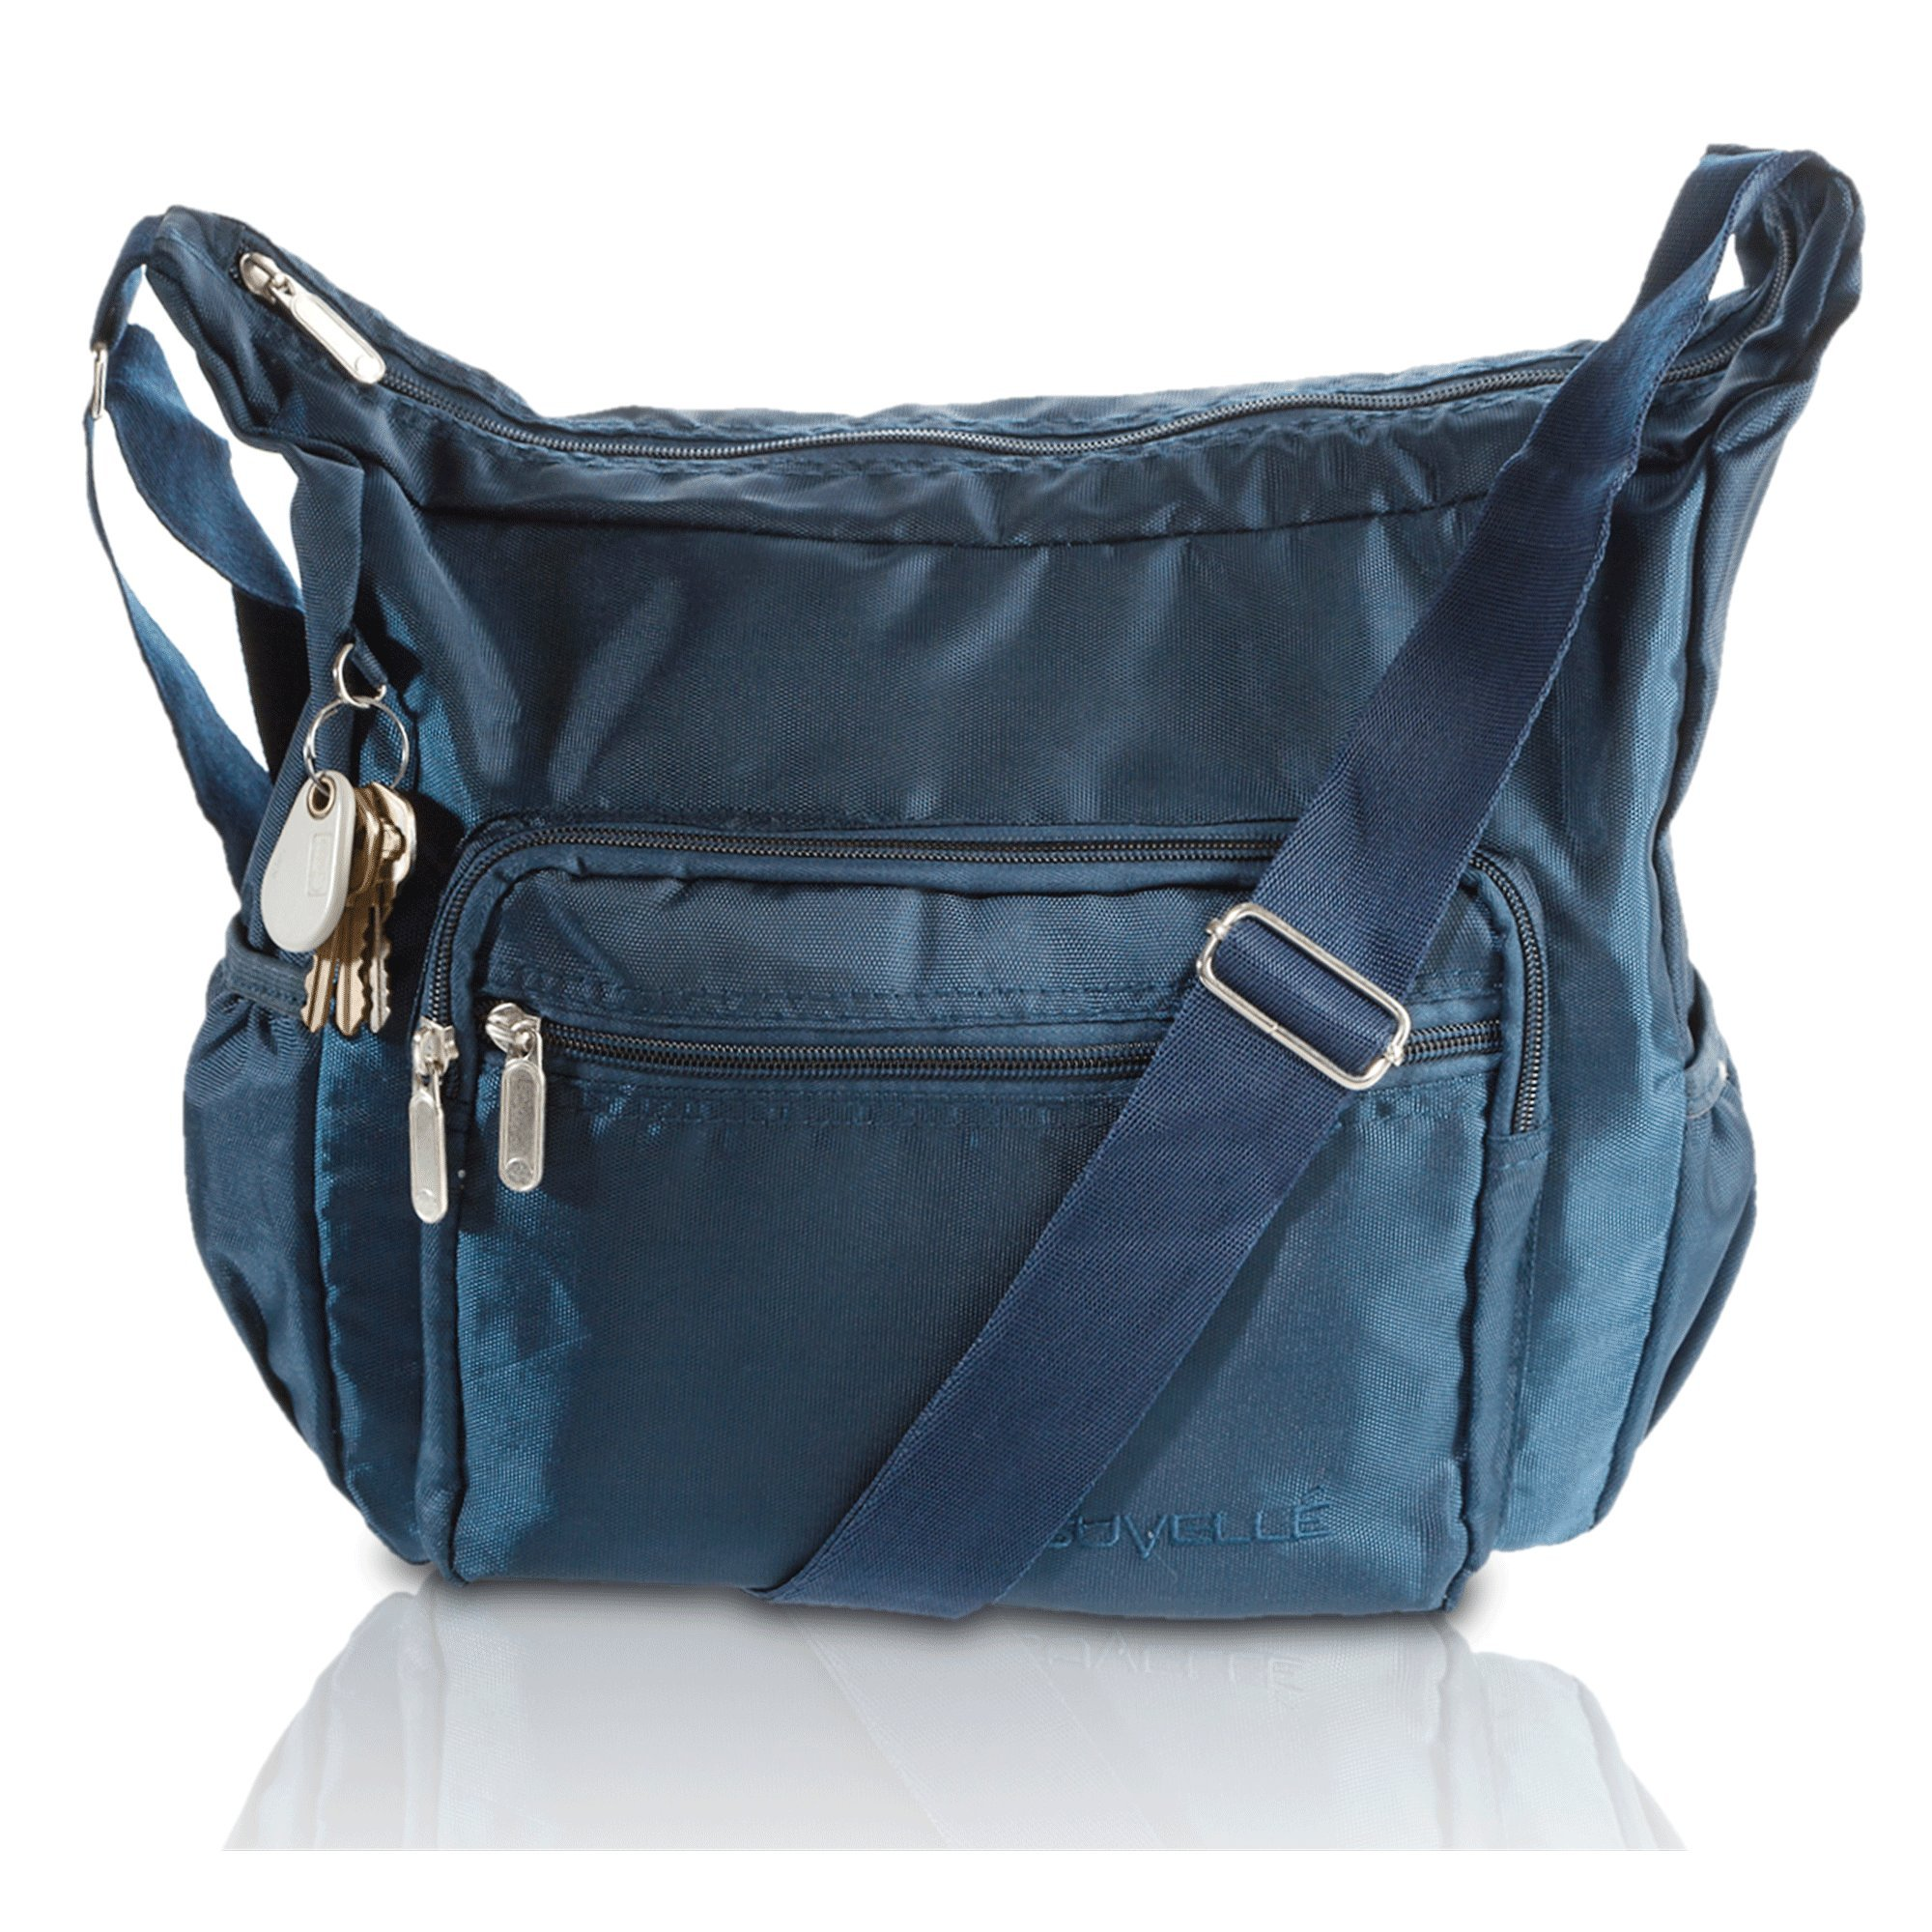 Crossbody Bags for Women Nylon Lightweight Travel Purse Multi Pocket Shoulder Bag Handbags